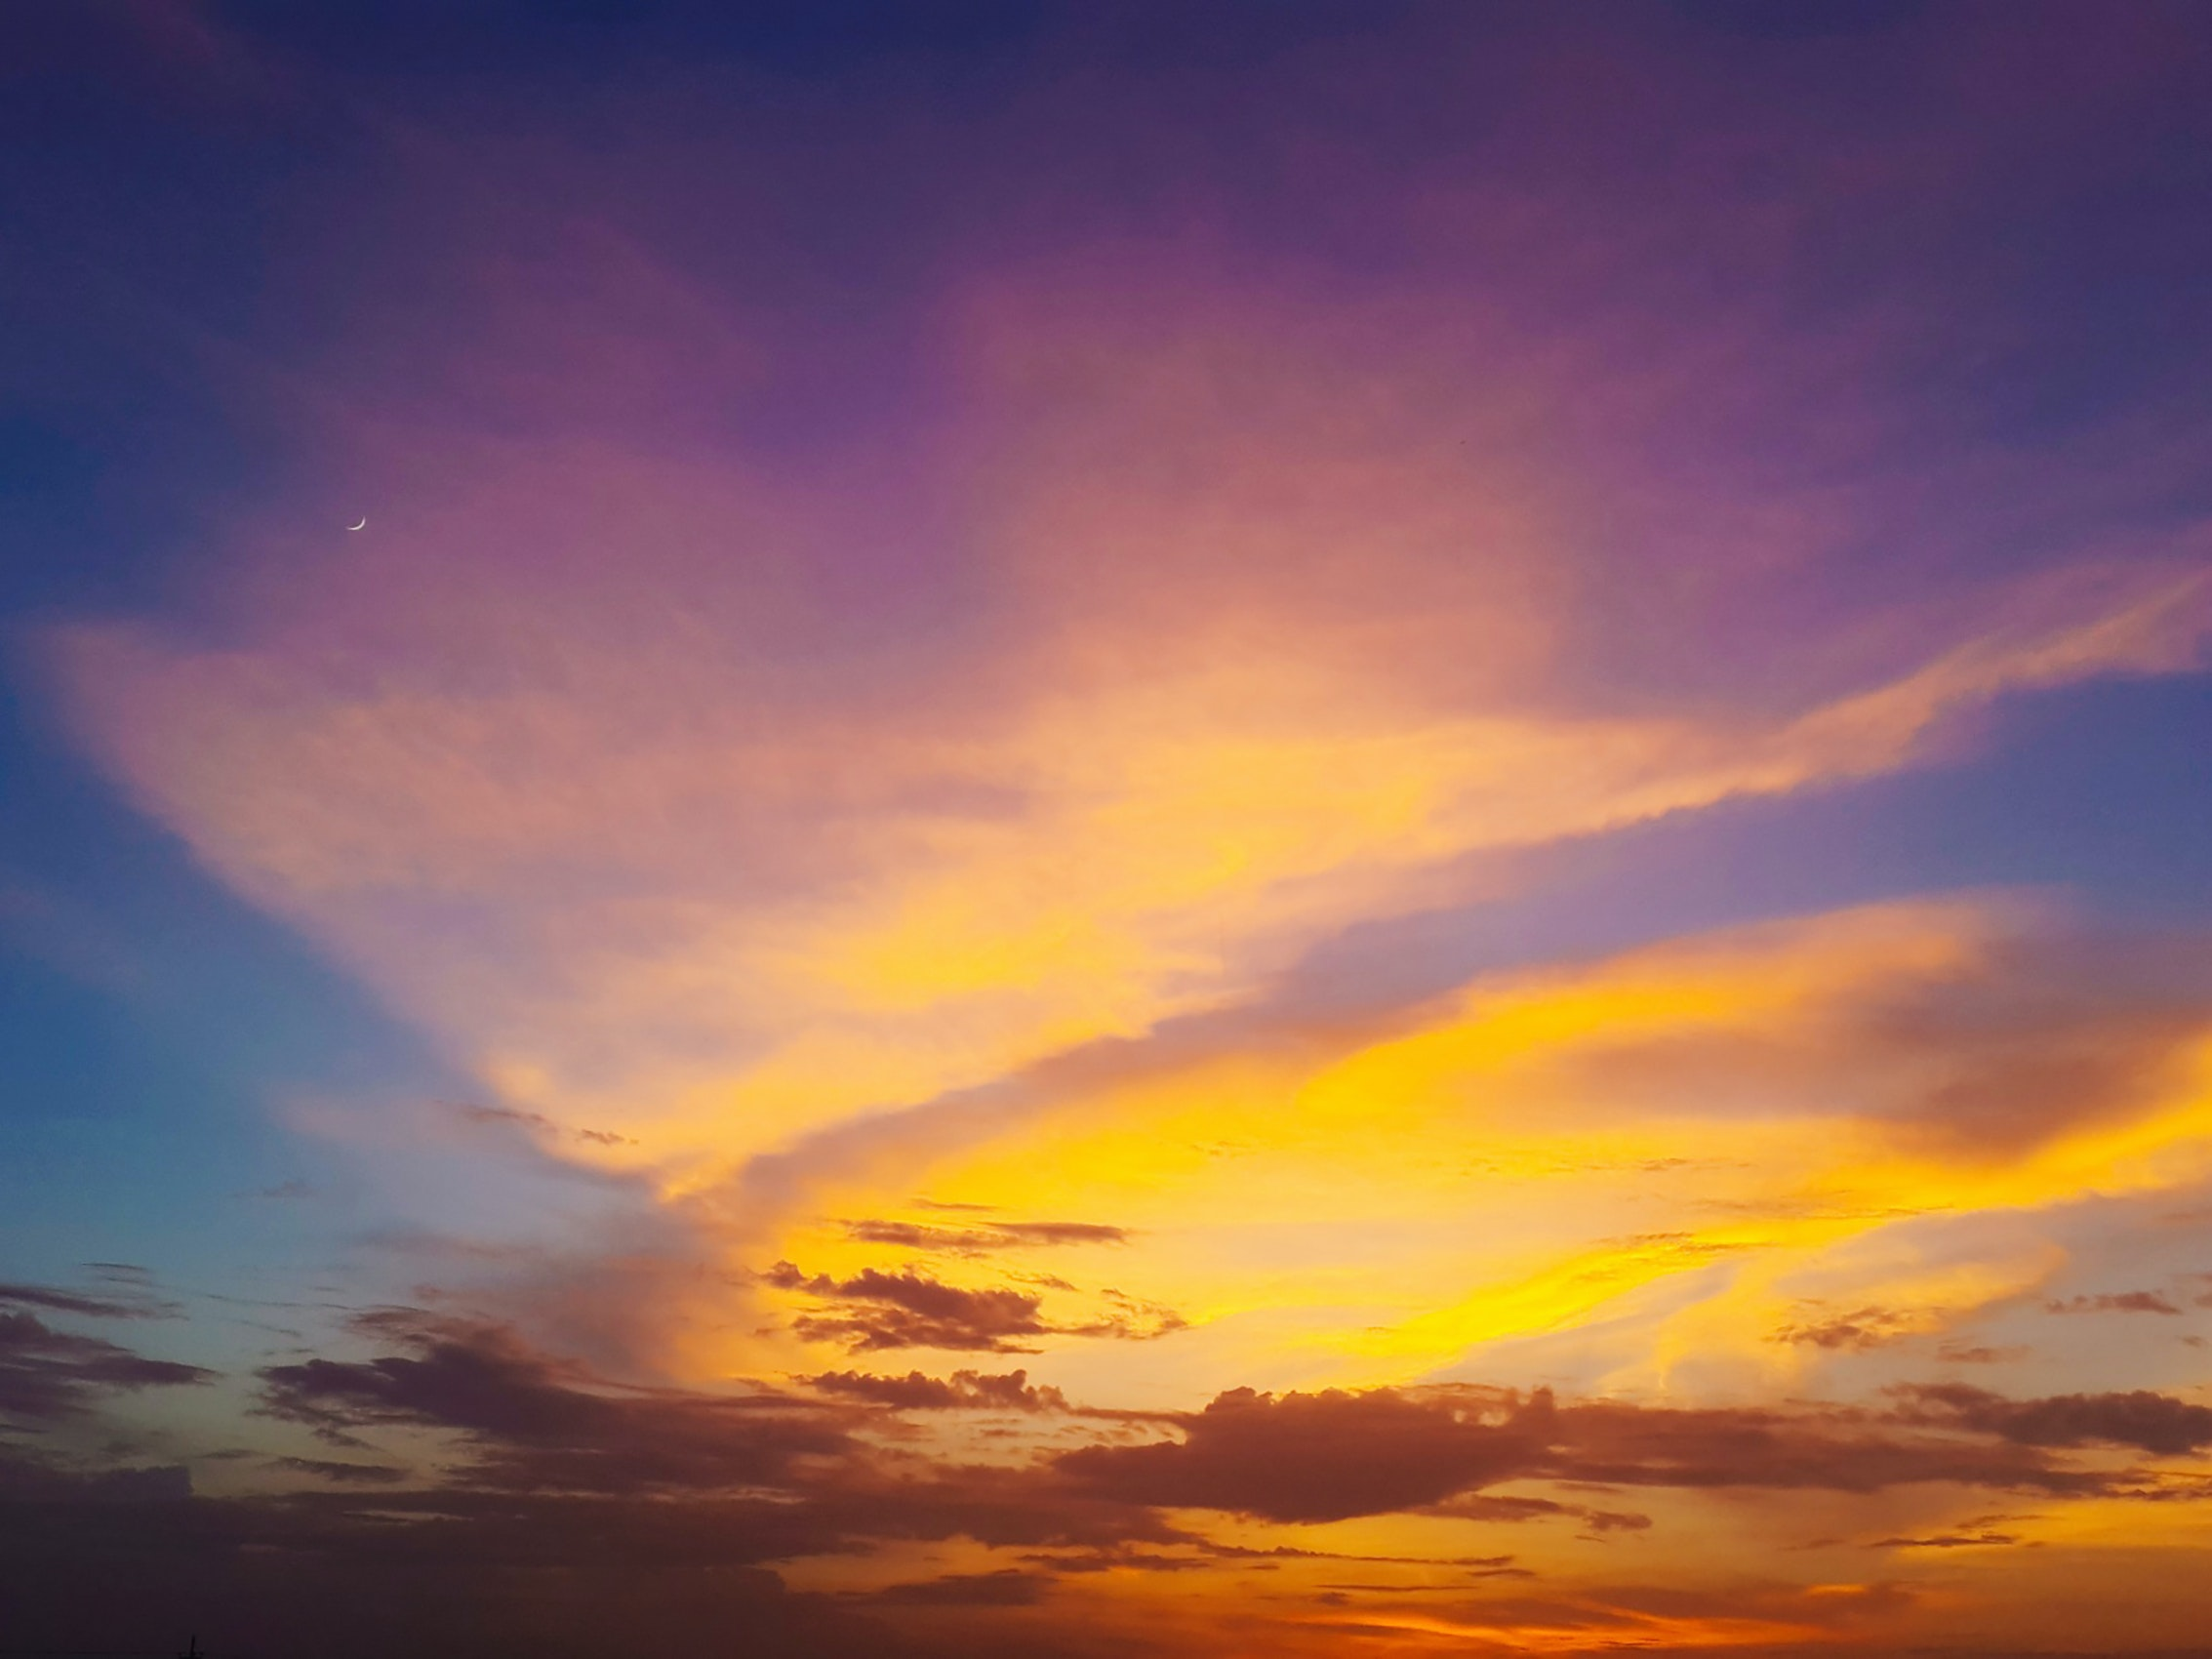 Sunset Under Cloudy Clouds 183 Free Stock Photo